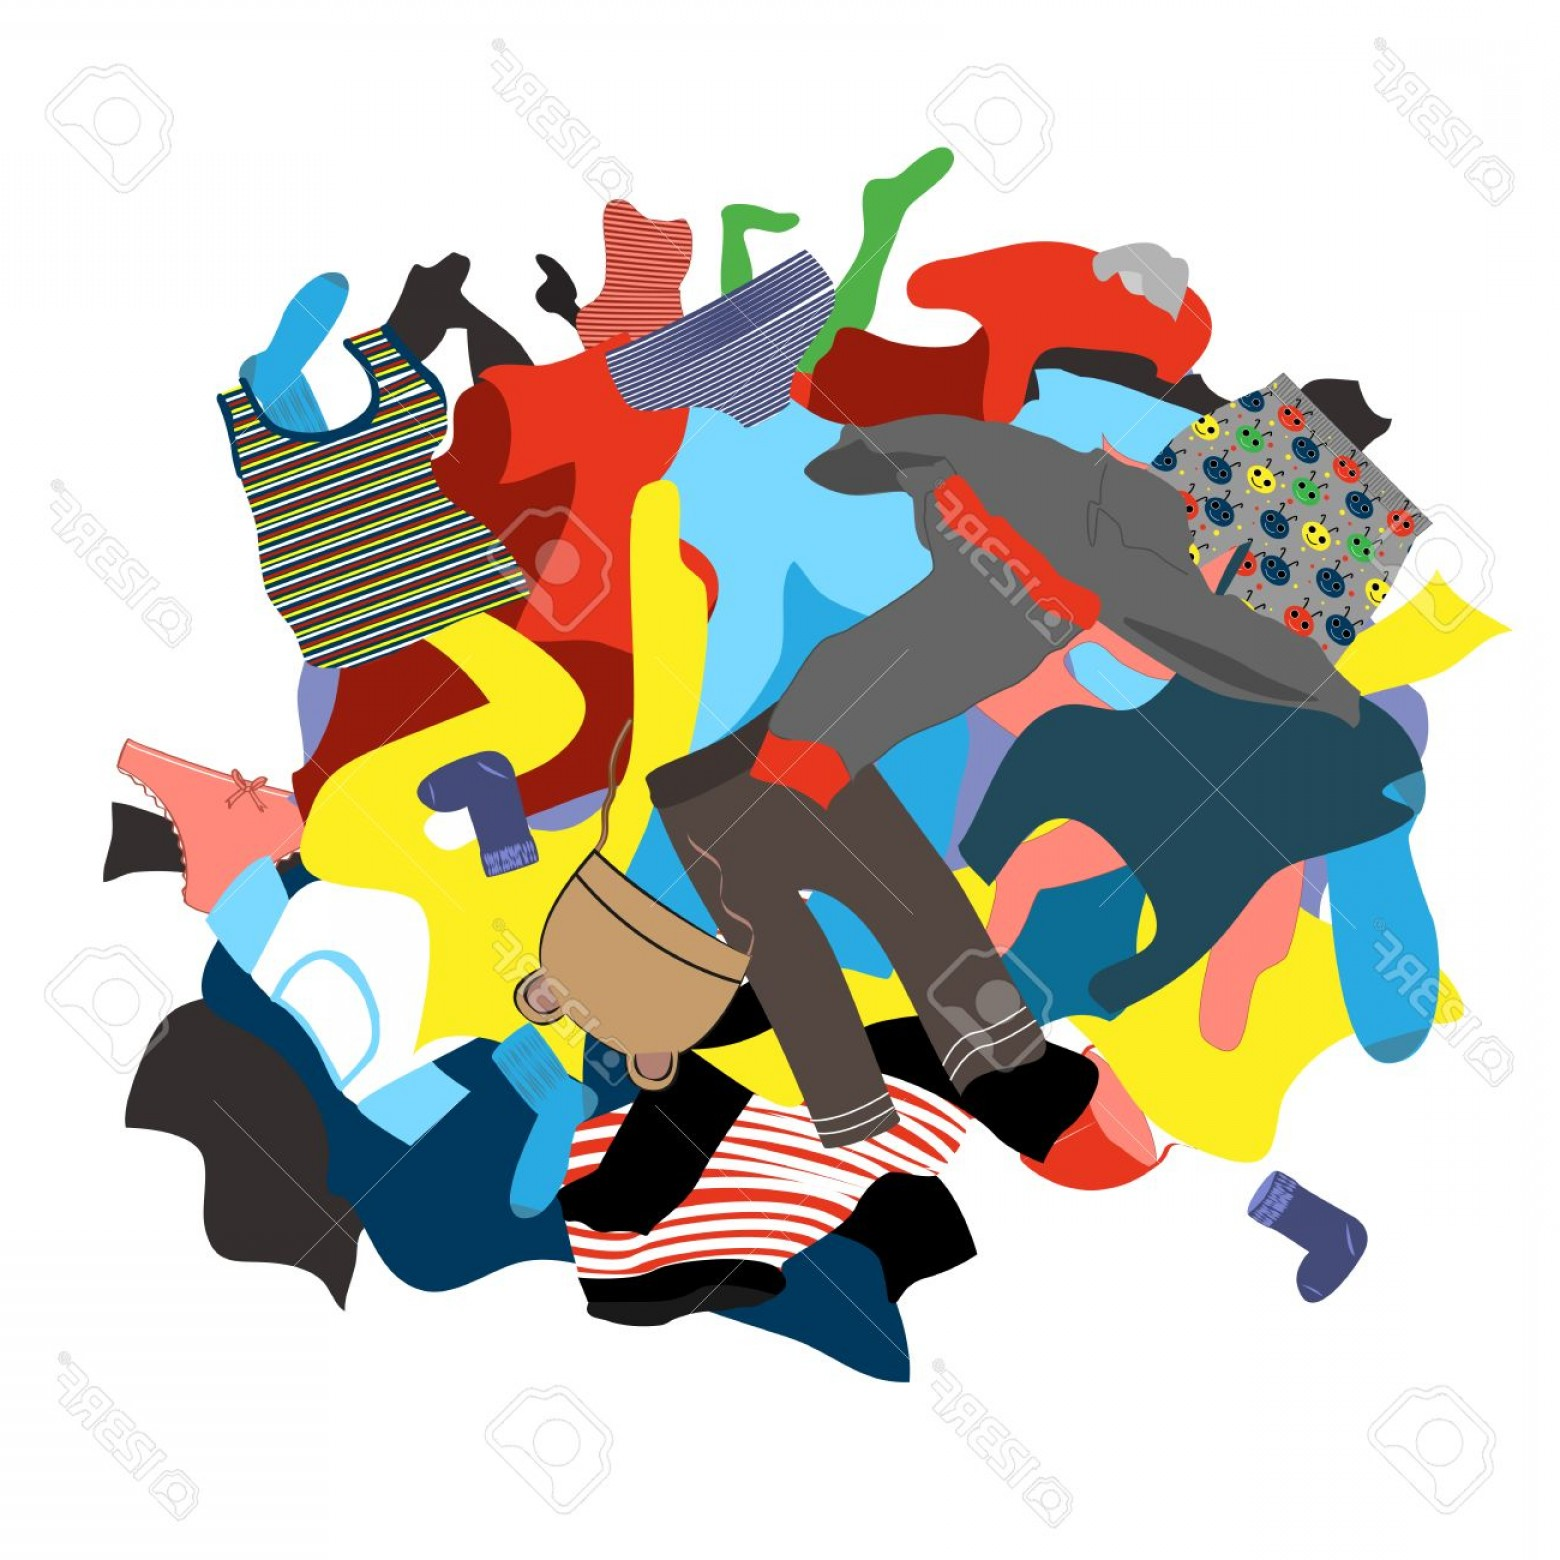 Photostock Vector Illustration Featuring A Messy Pile Of Dirty.